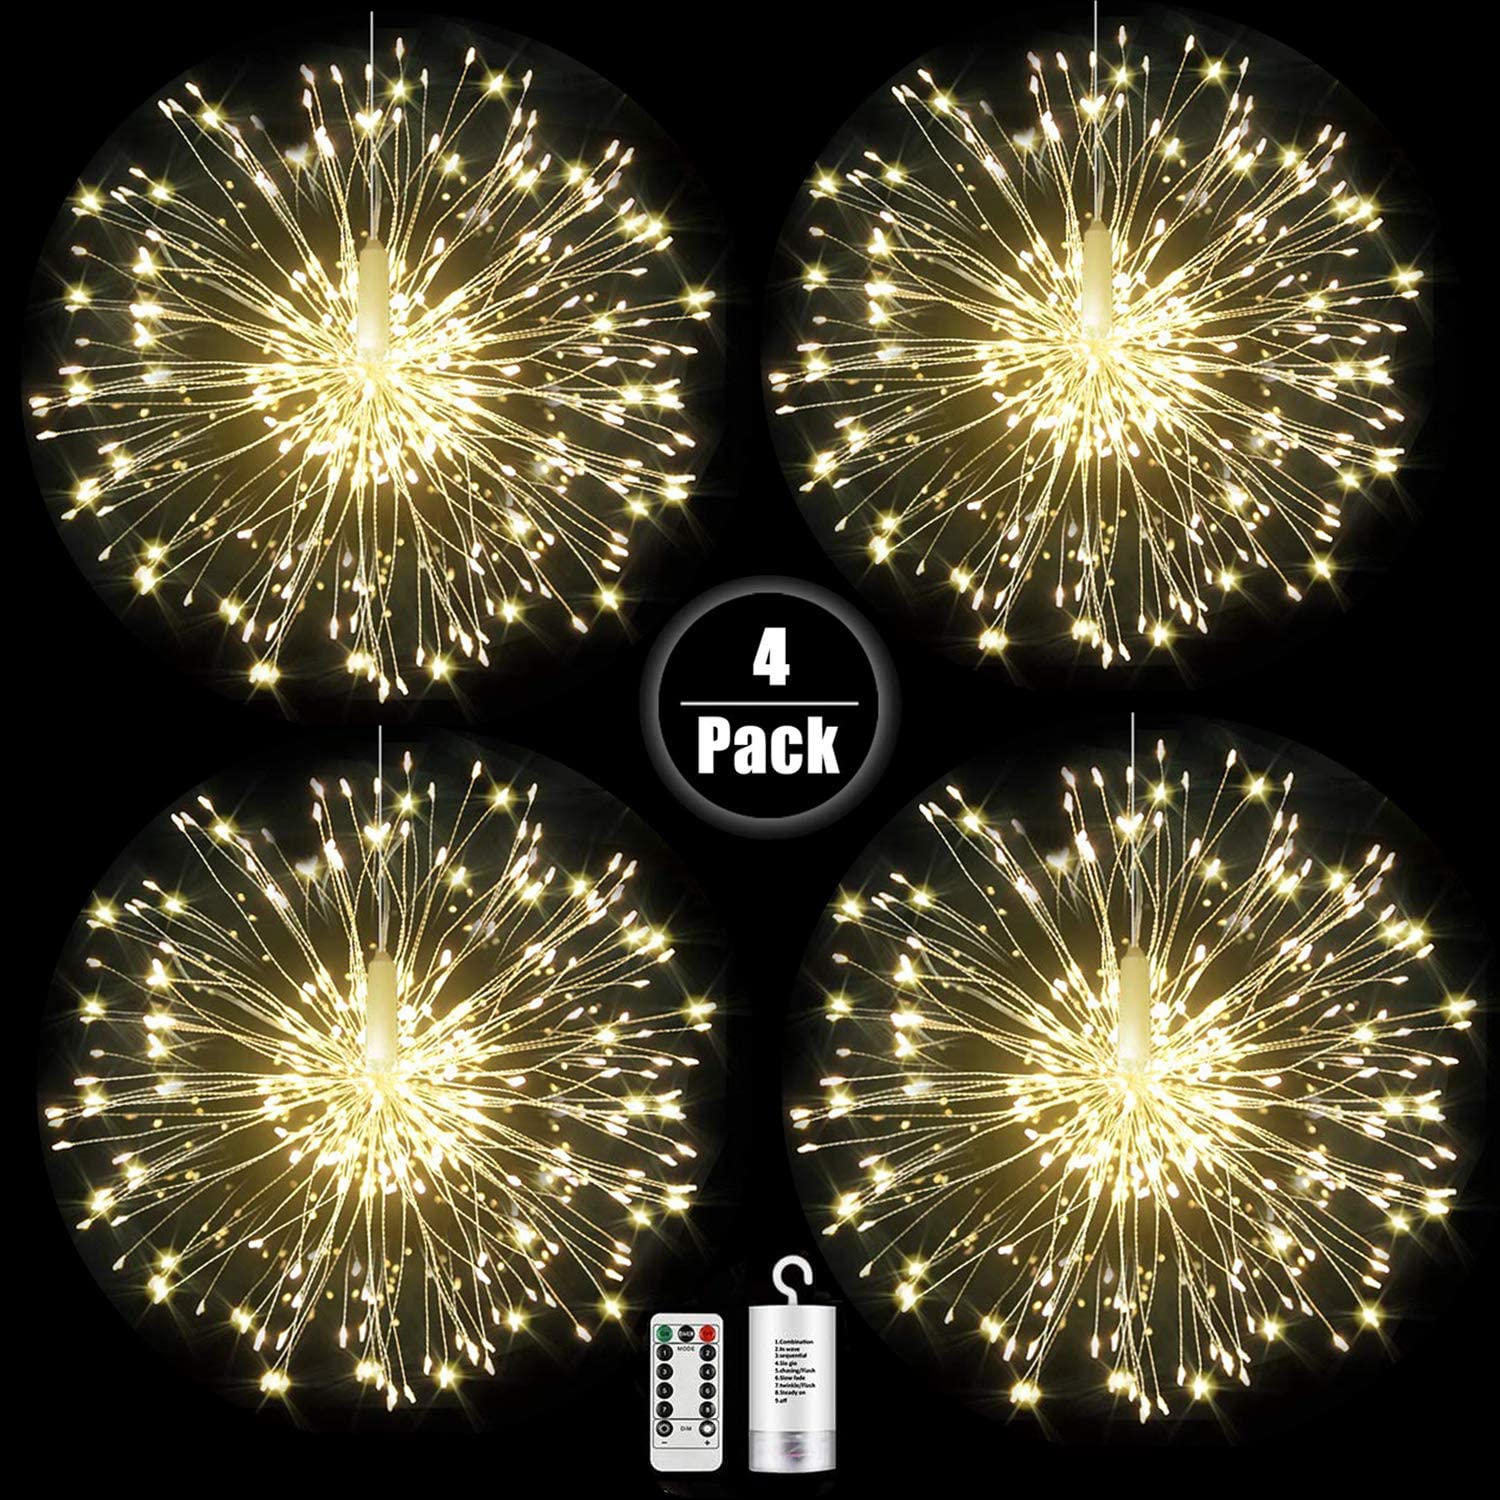 Digcreat Firework Lights Wire Lights,120 LED DIY 8 Modes Dimmable String Fairy Lights with Remote Control,Waterproof Decorative Hanging Starburst Lights for Christmas Home Patio, Warmwhite(4 Pack)